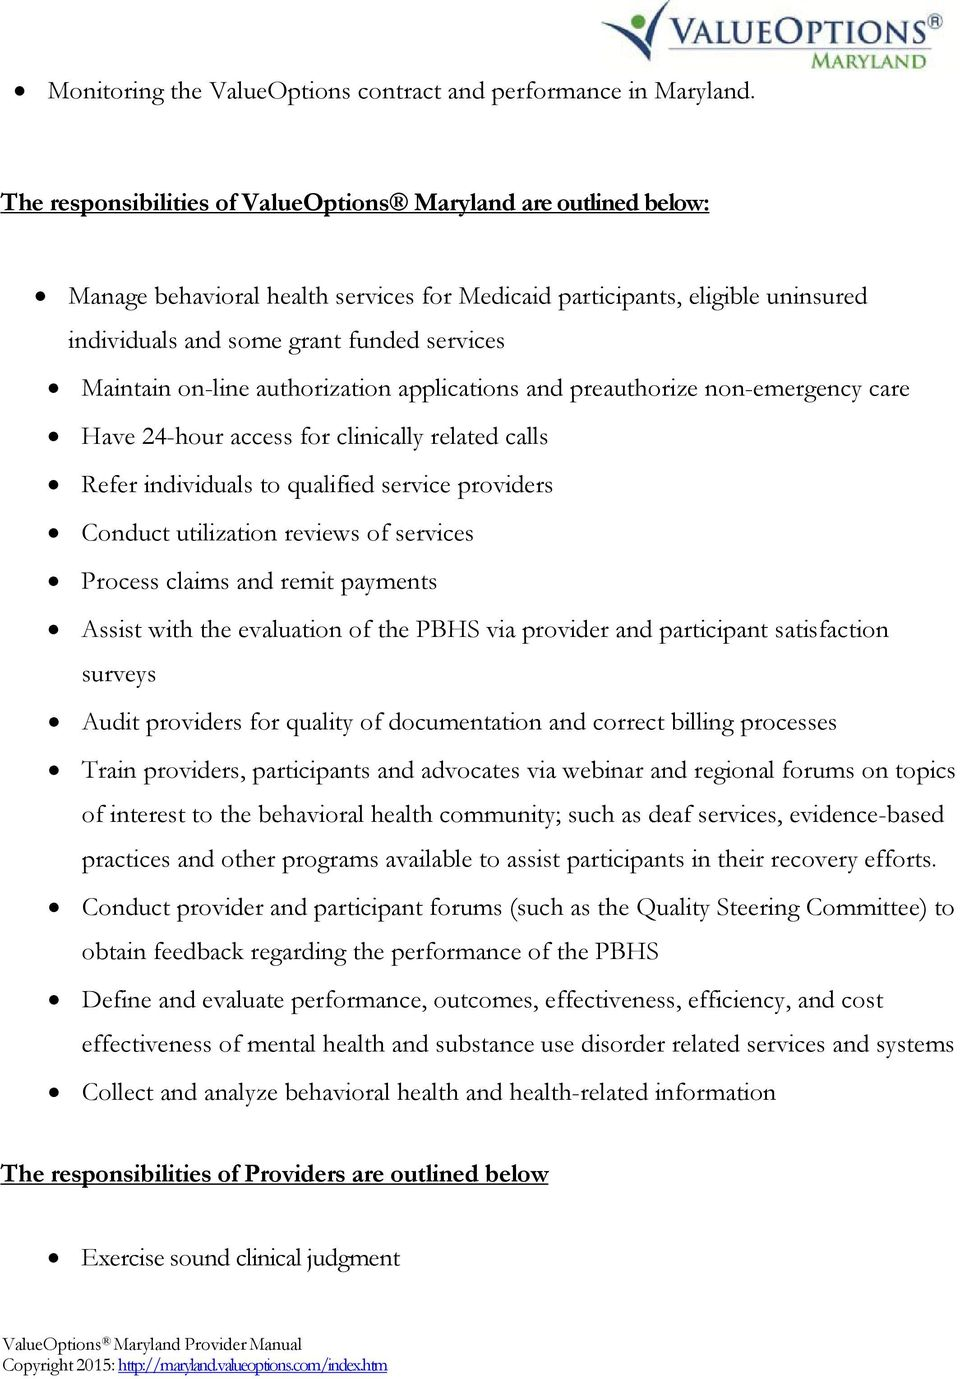 Welcome To The Maryland Public Behavioral Health System Pdf